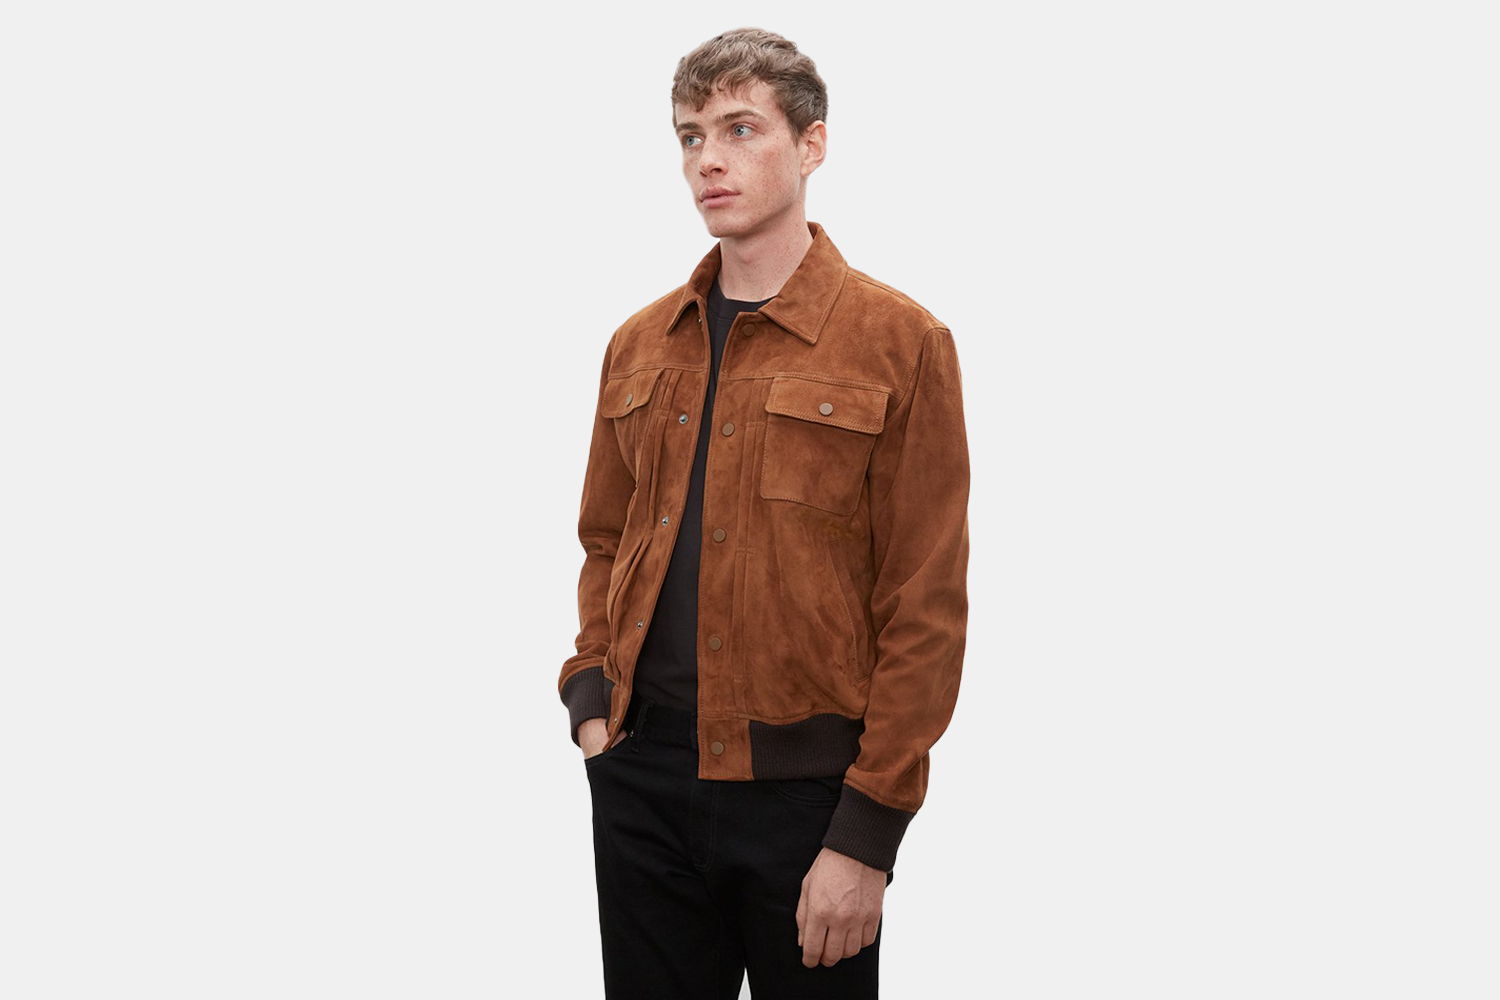 a model in a suede jacket.